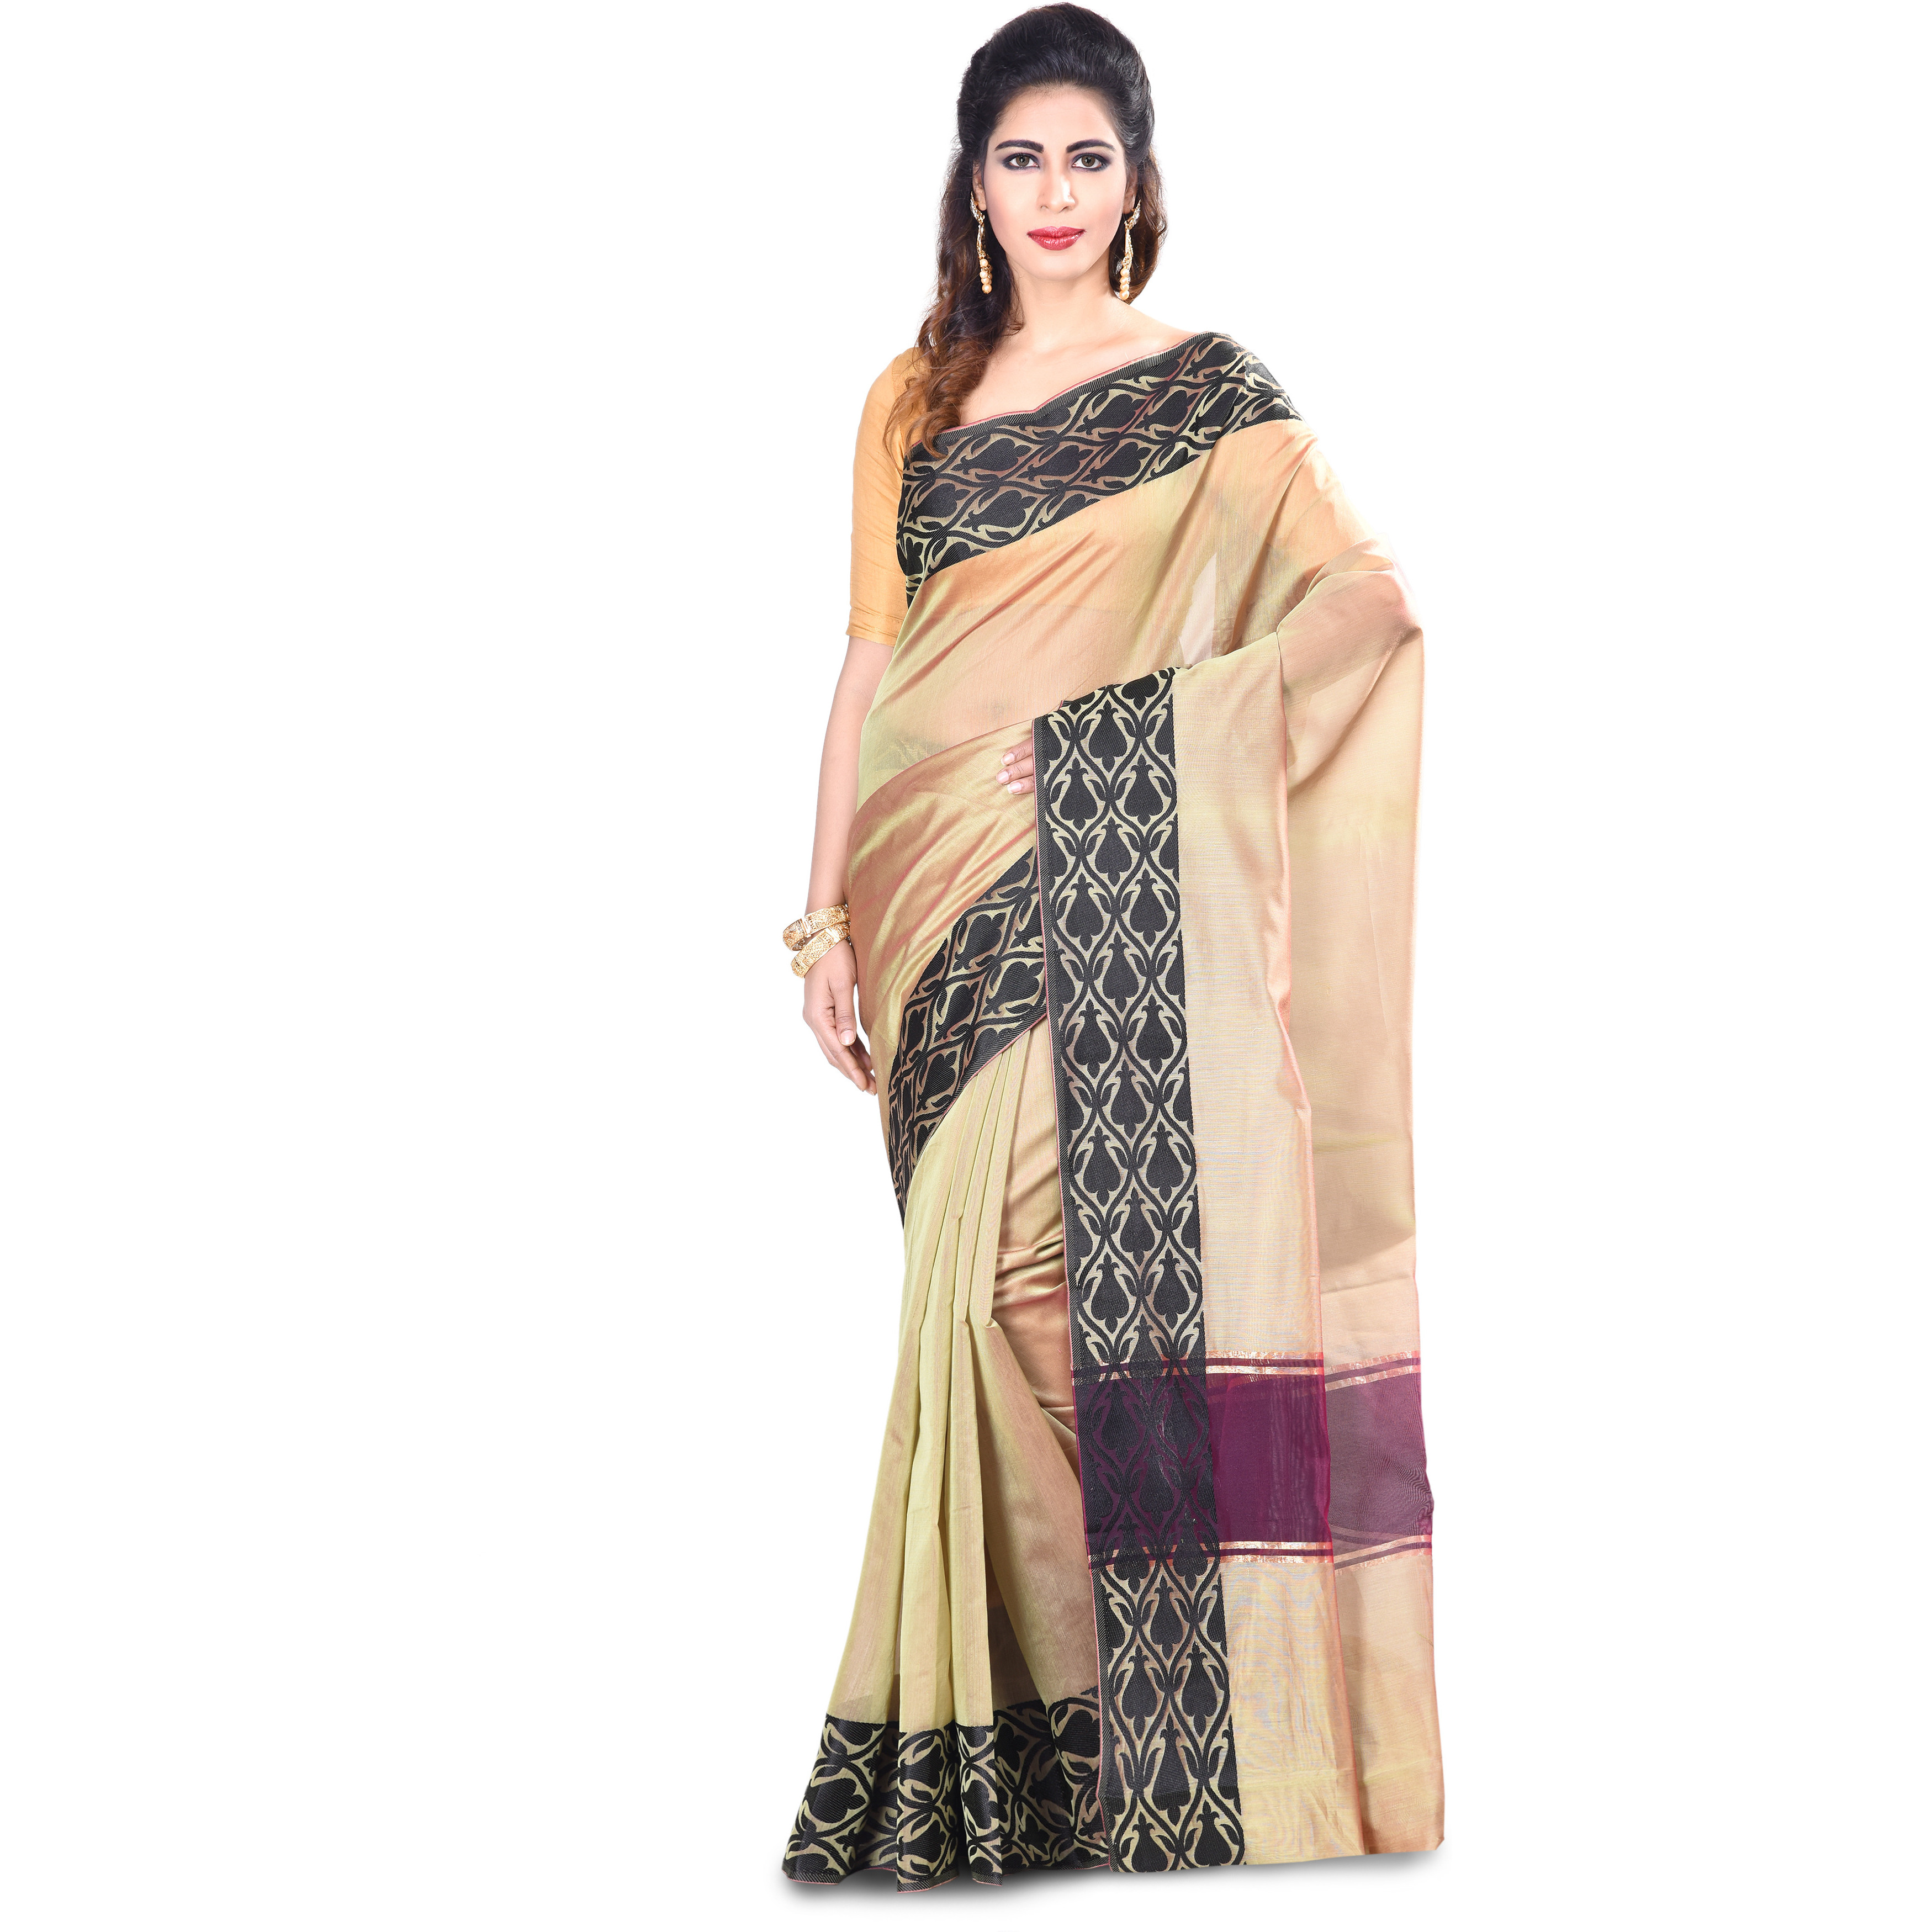 Chanderi Fancy Zari Work Banarasi Saree